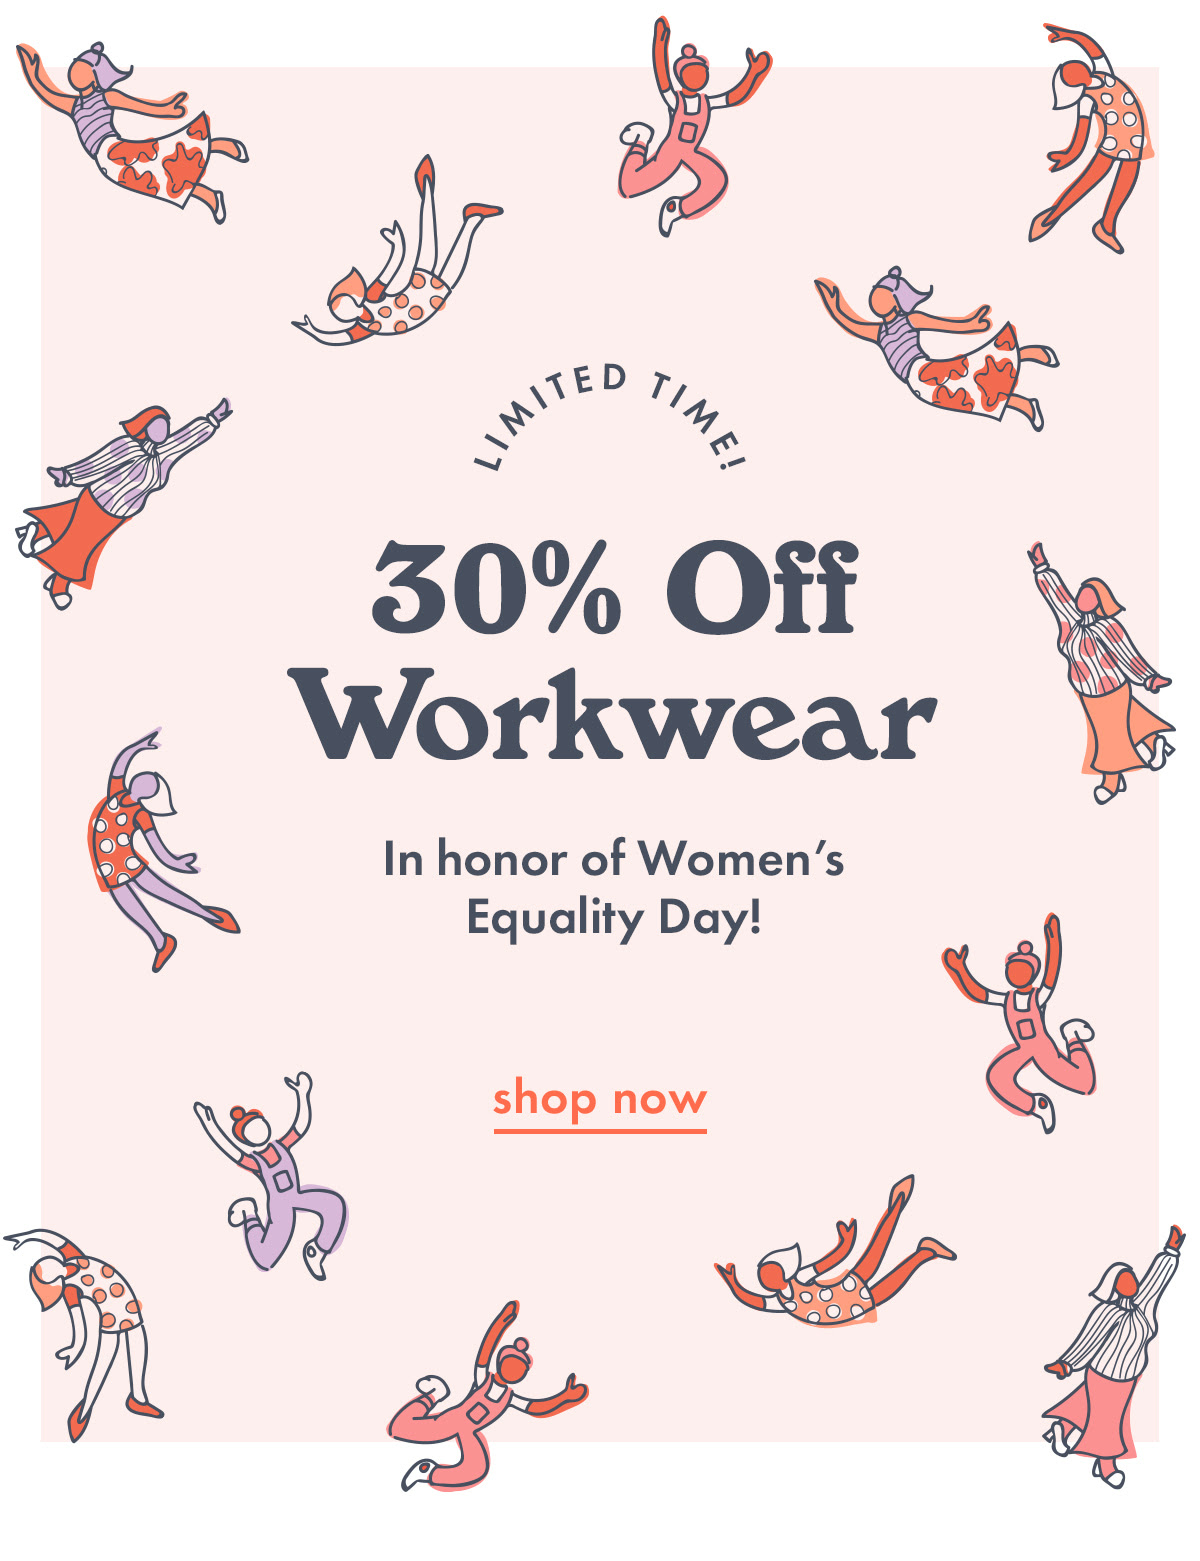 womensEquality-email-1.jpg